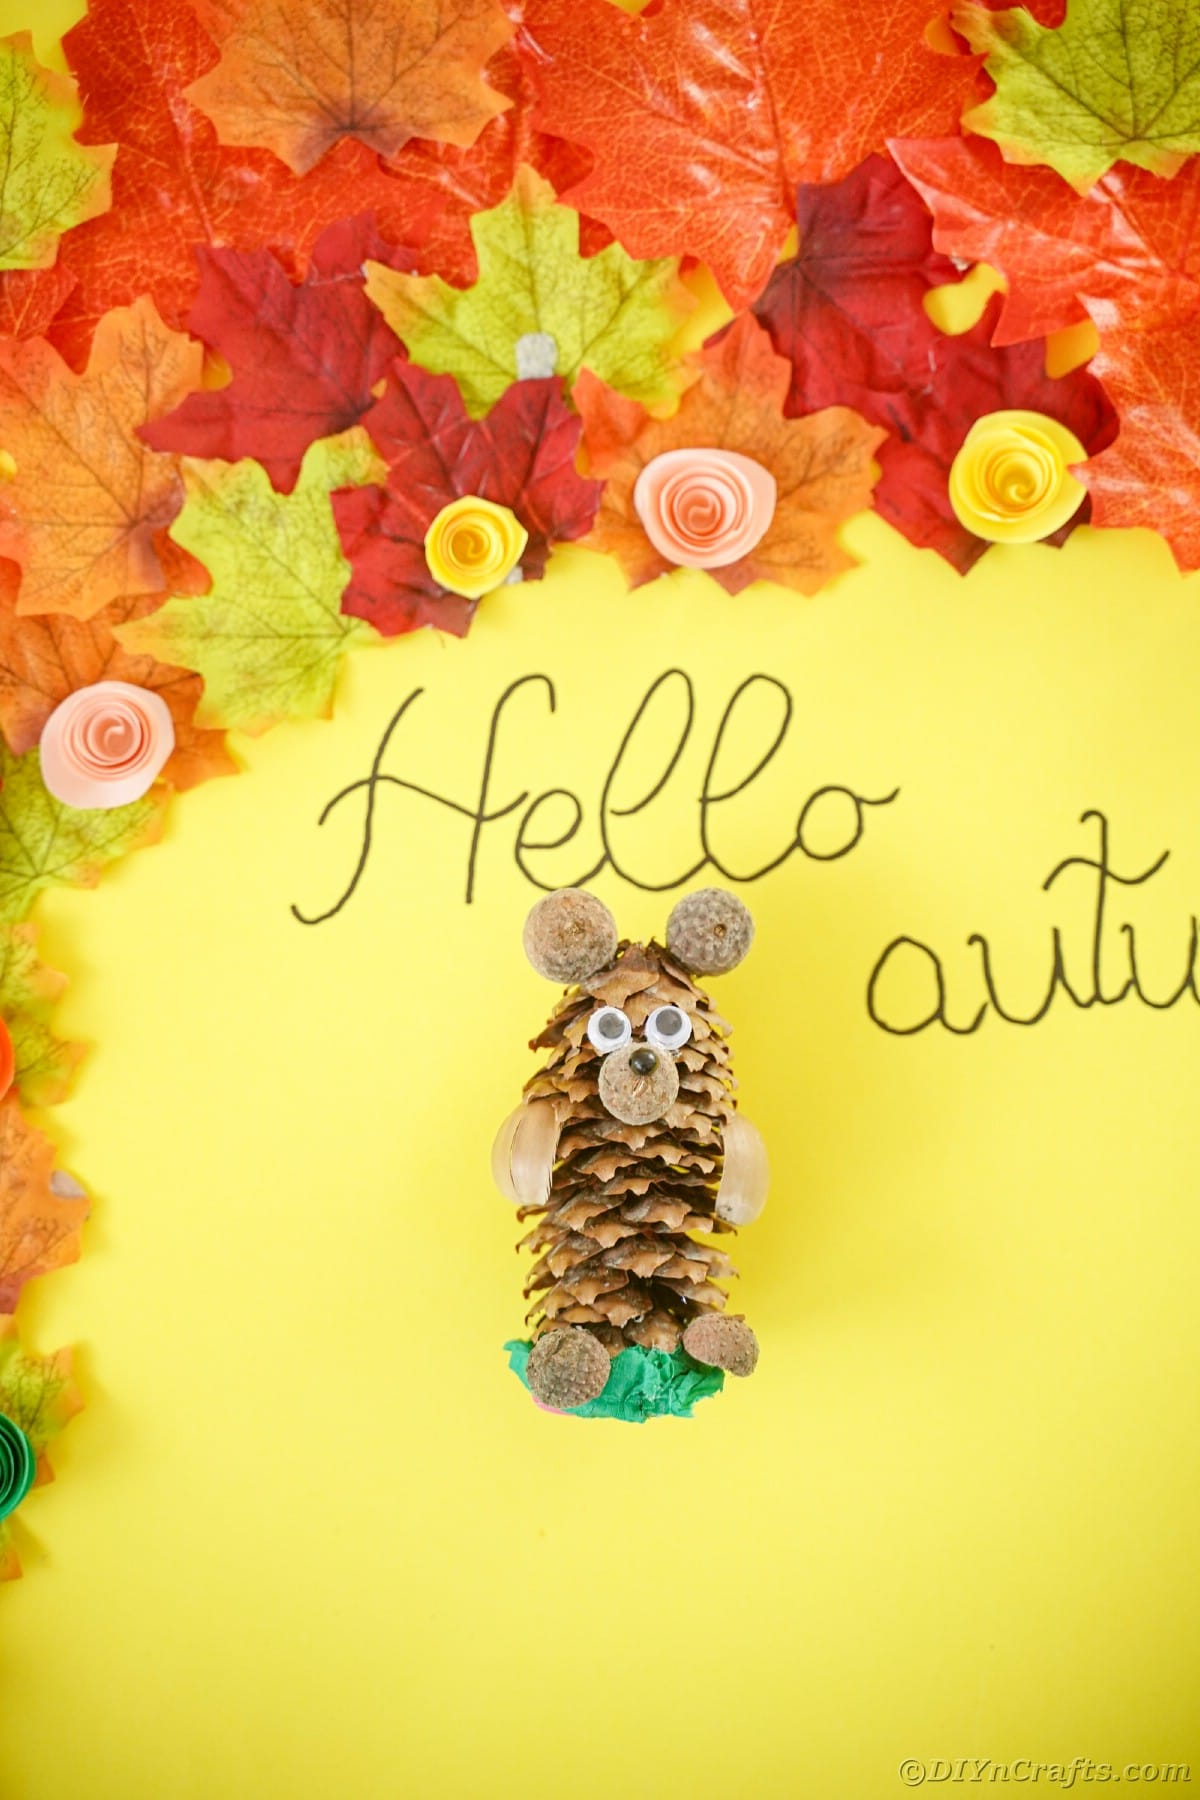 Yellow table with fake leaves and a pinecone bear